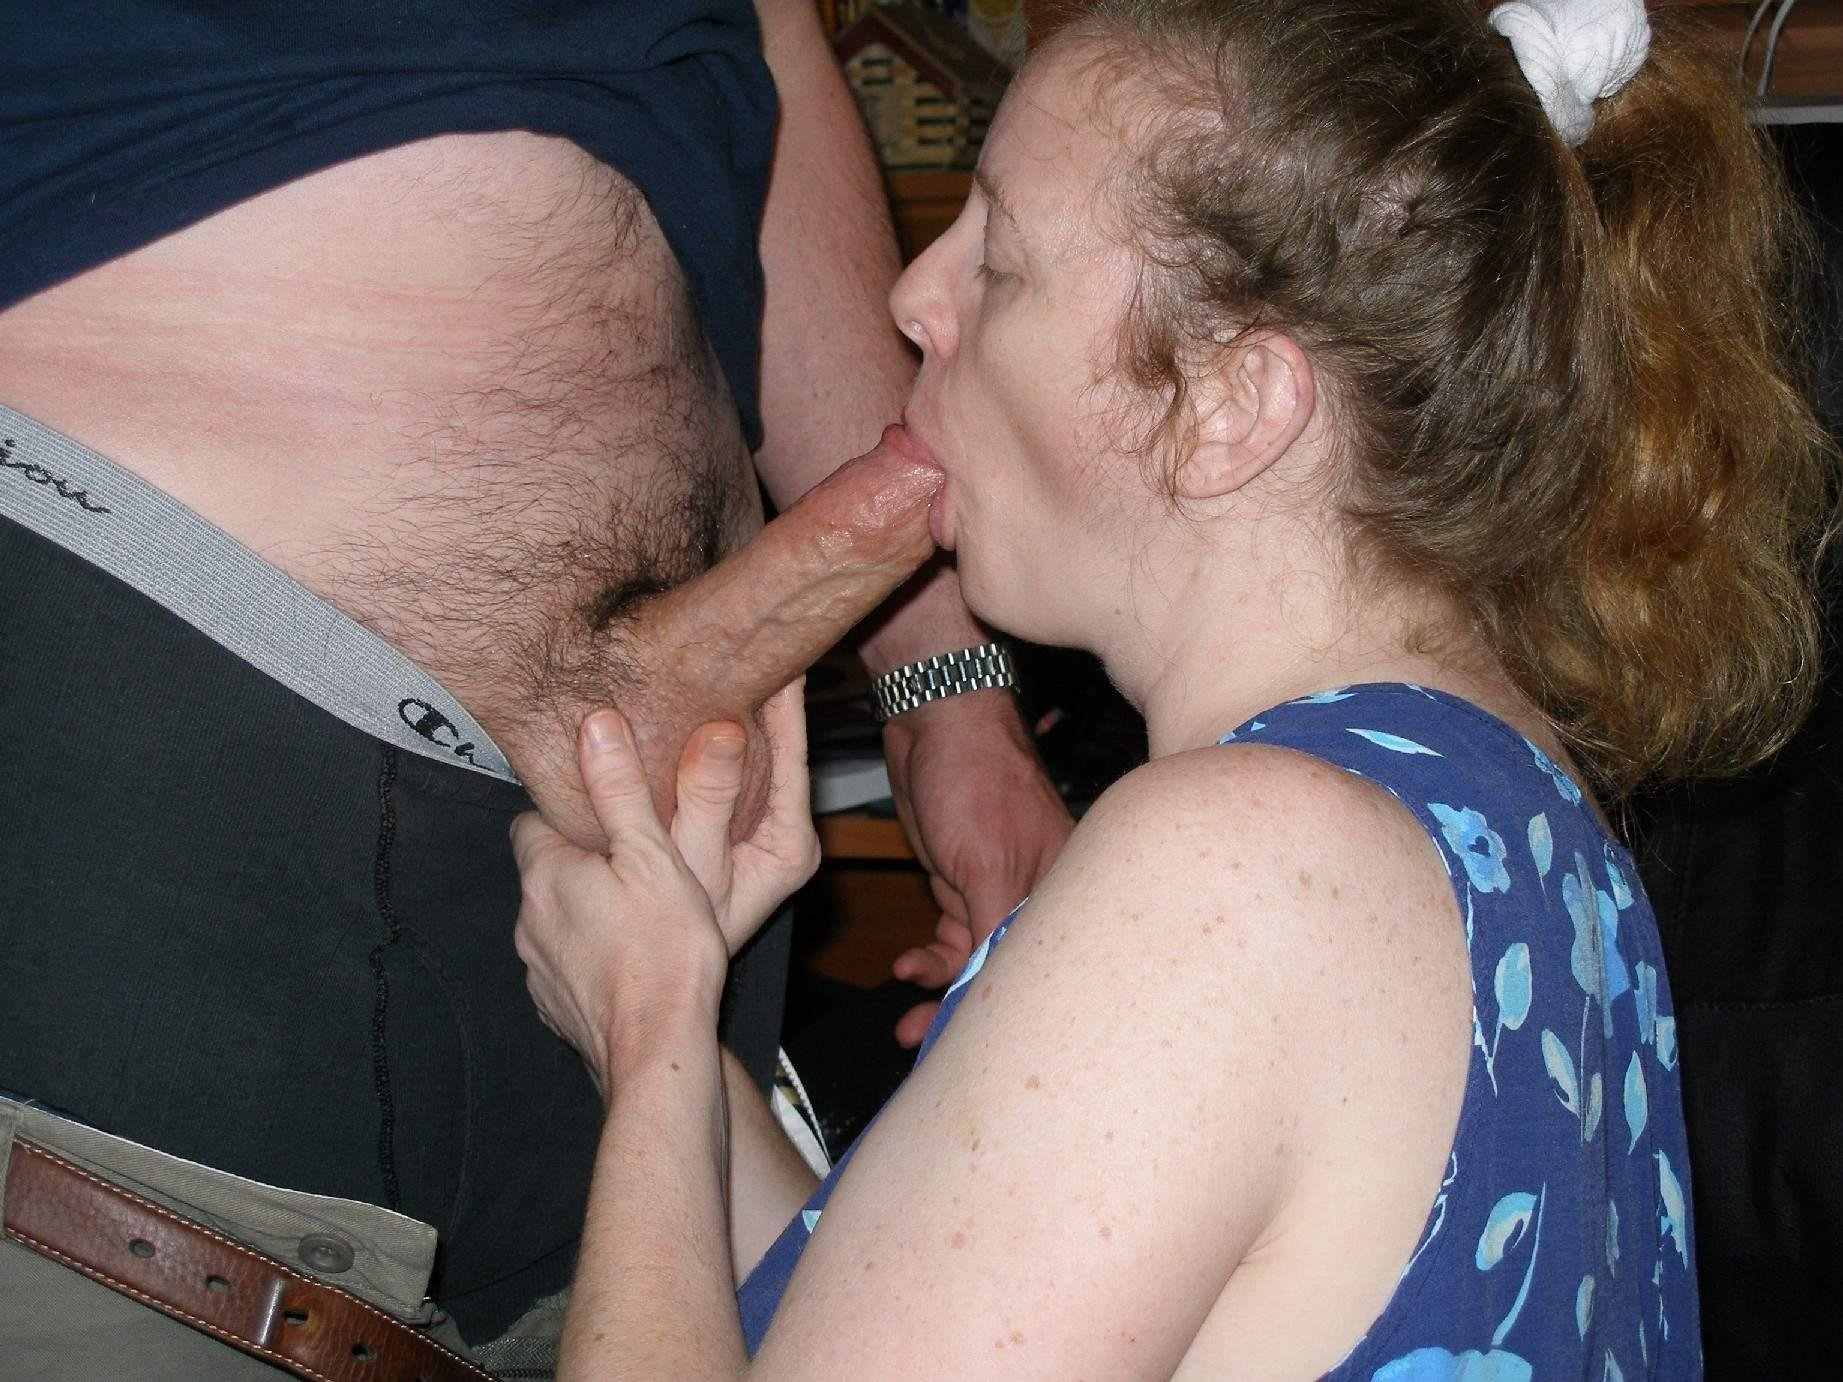 Bf gf sexing in c